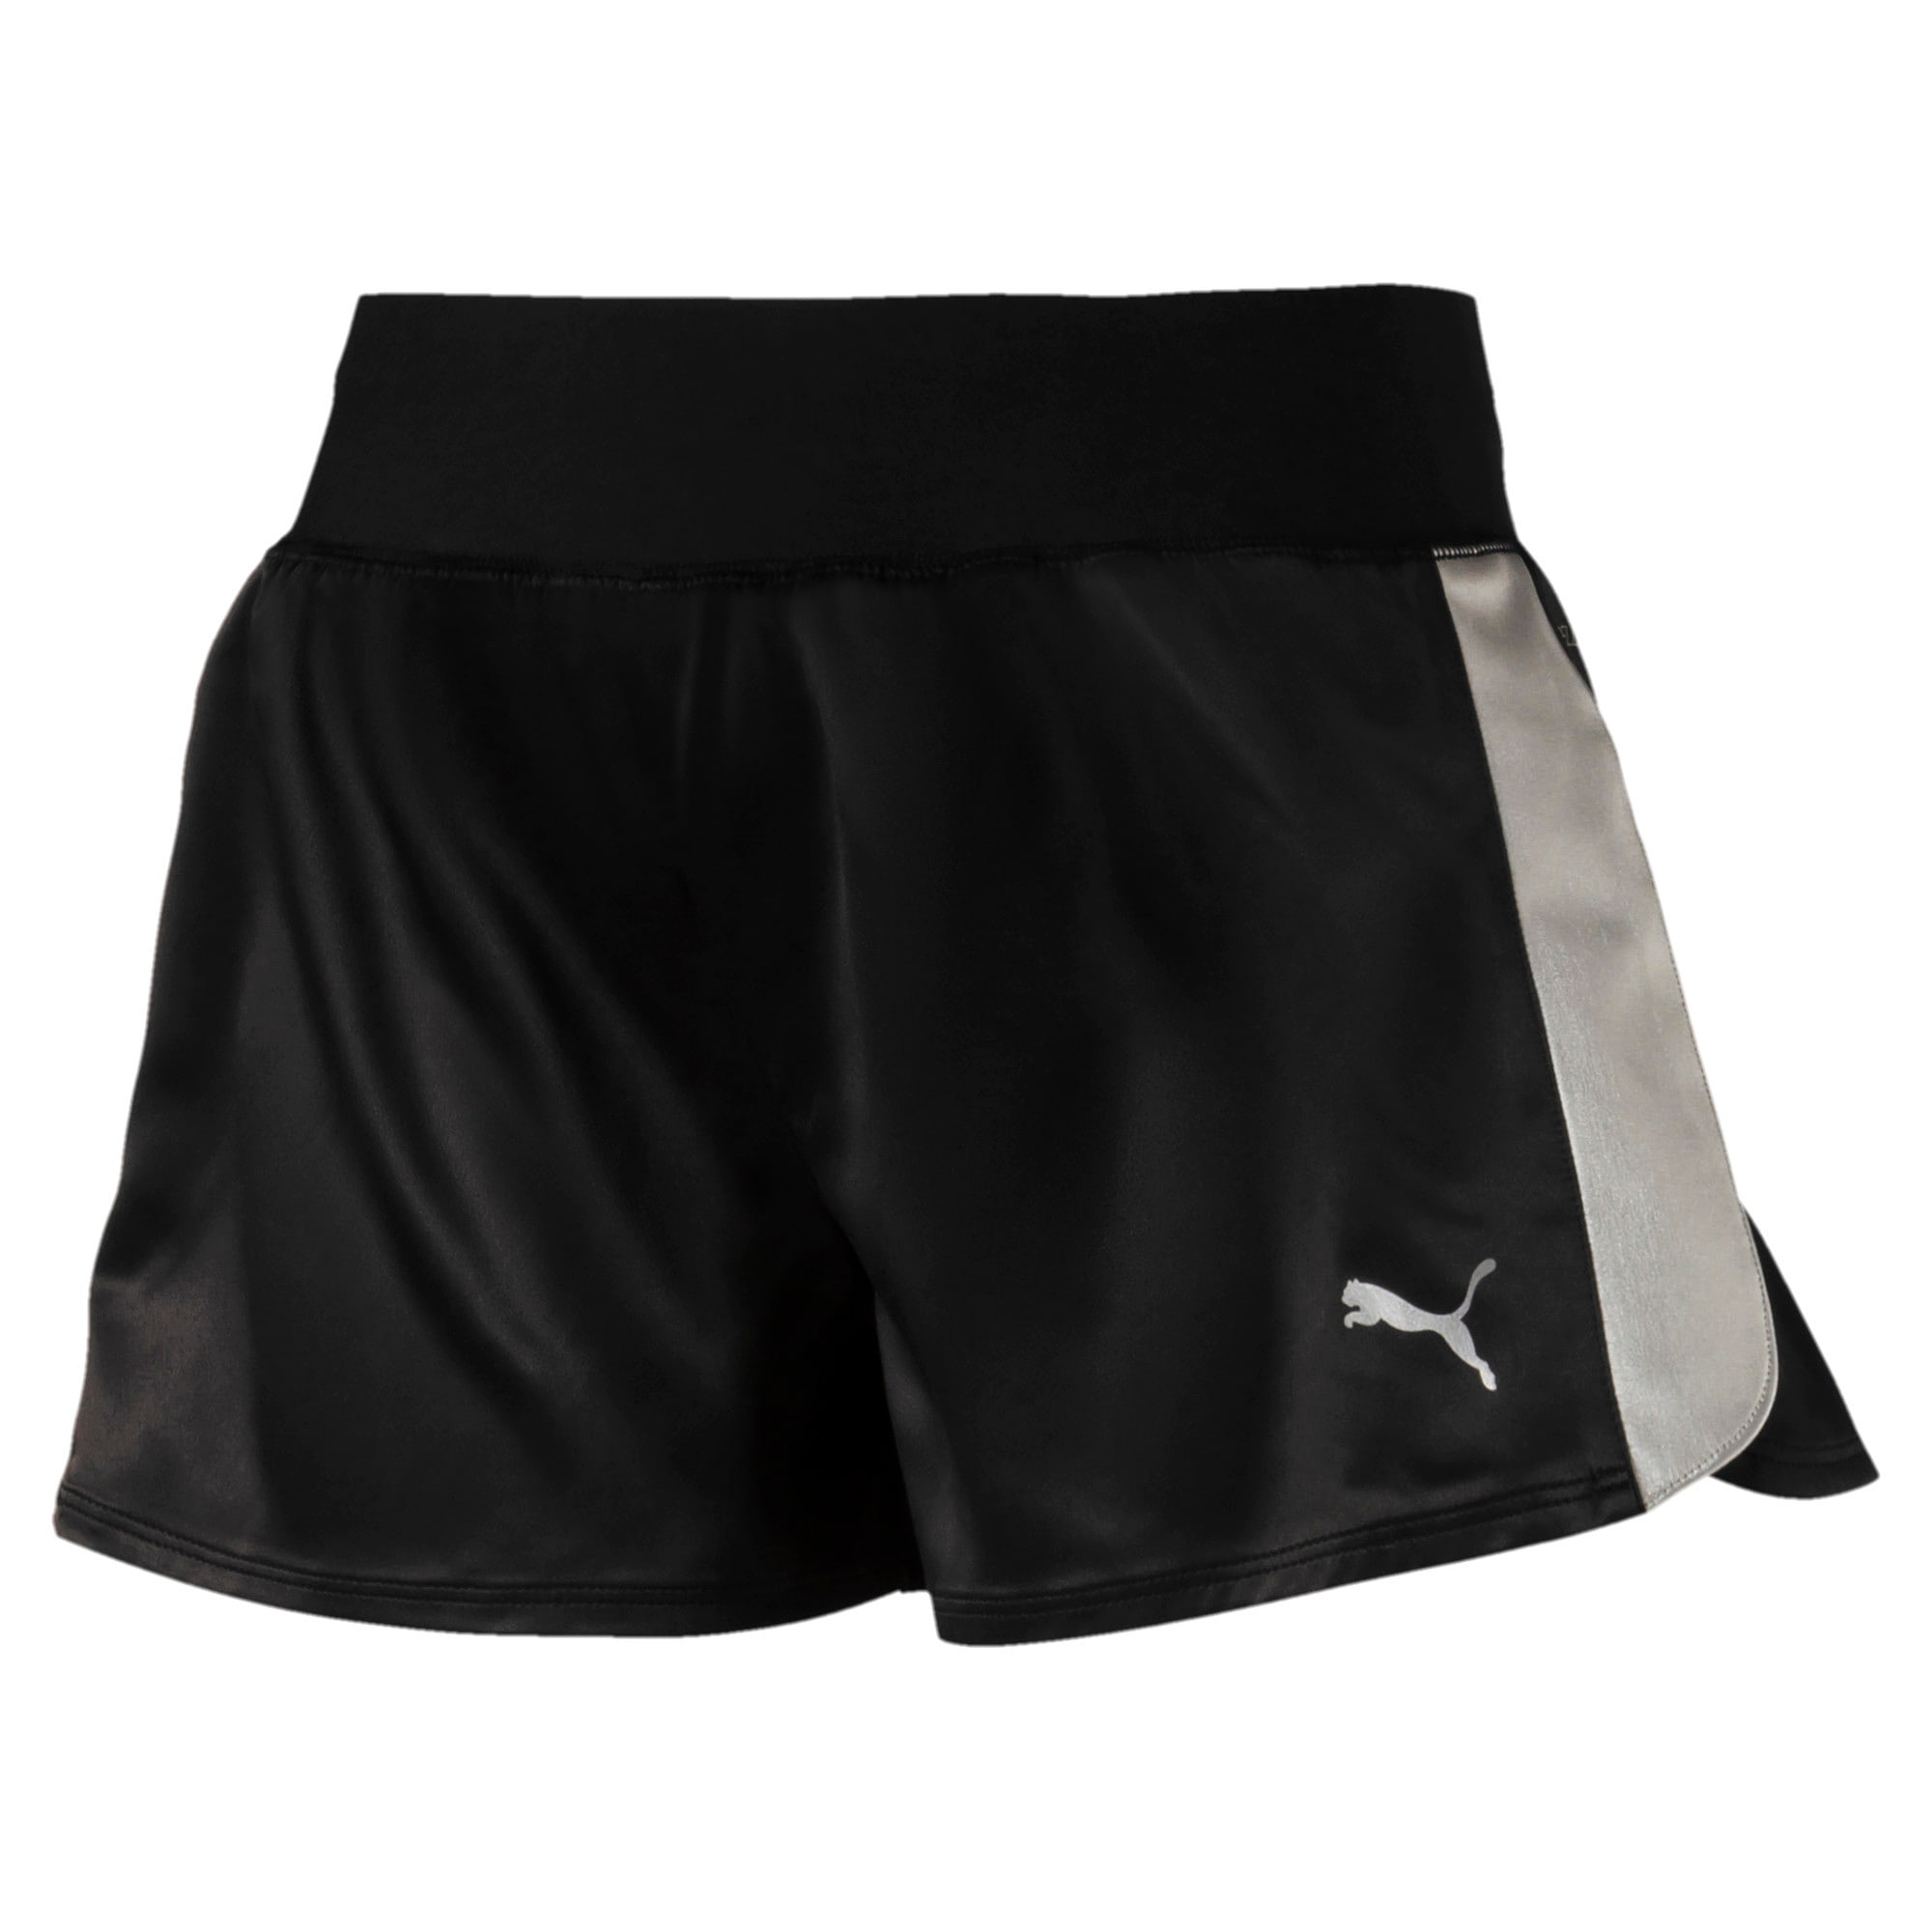 Thumbnail 5 of Blast Woven Women's Shorts, Puma Black, medium